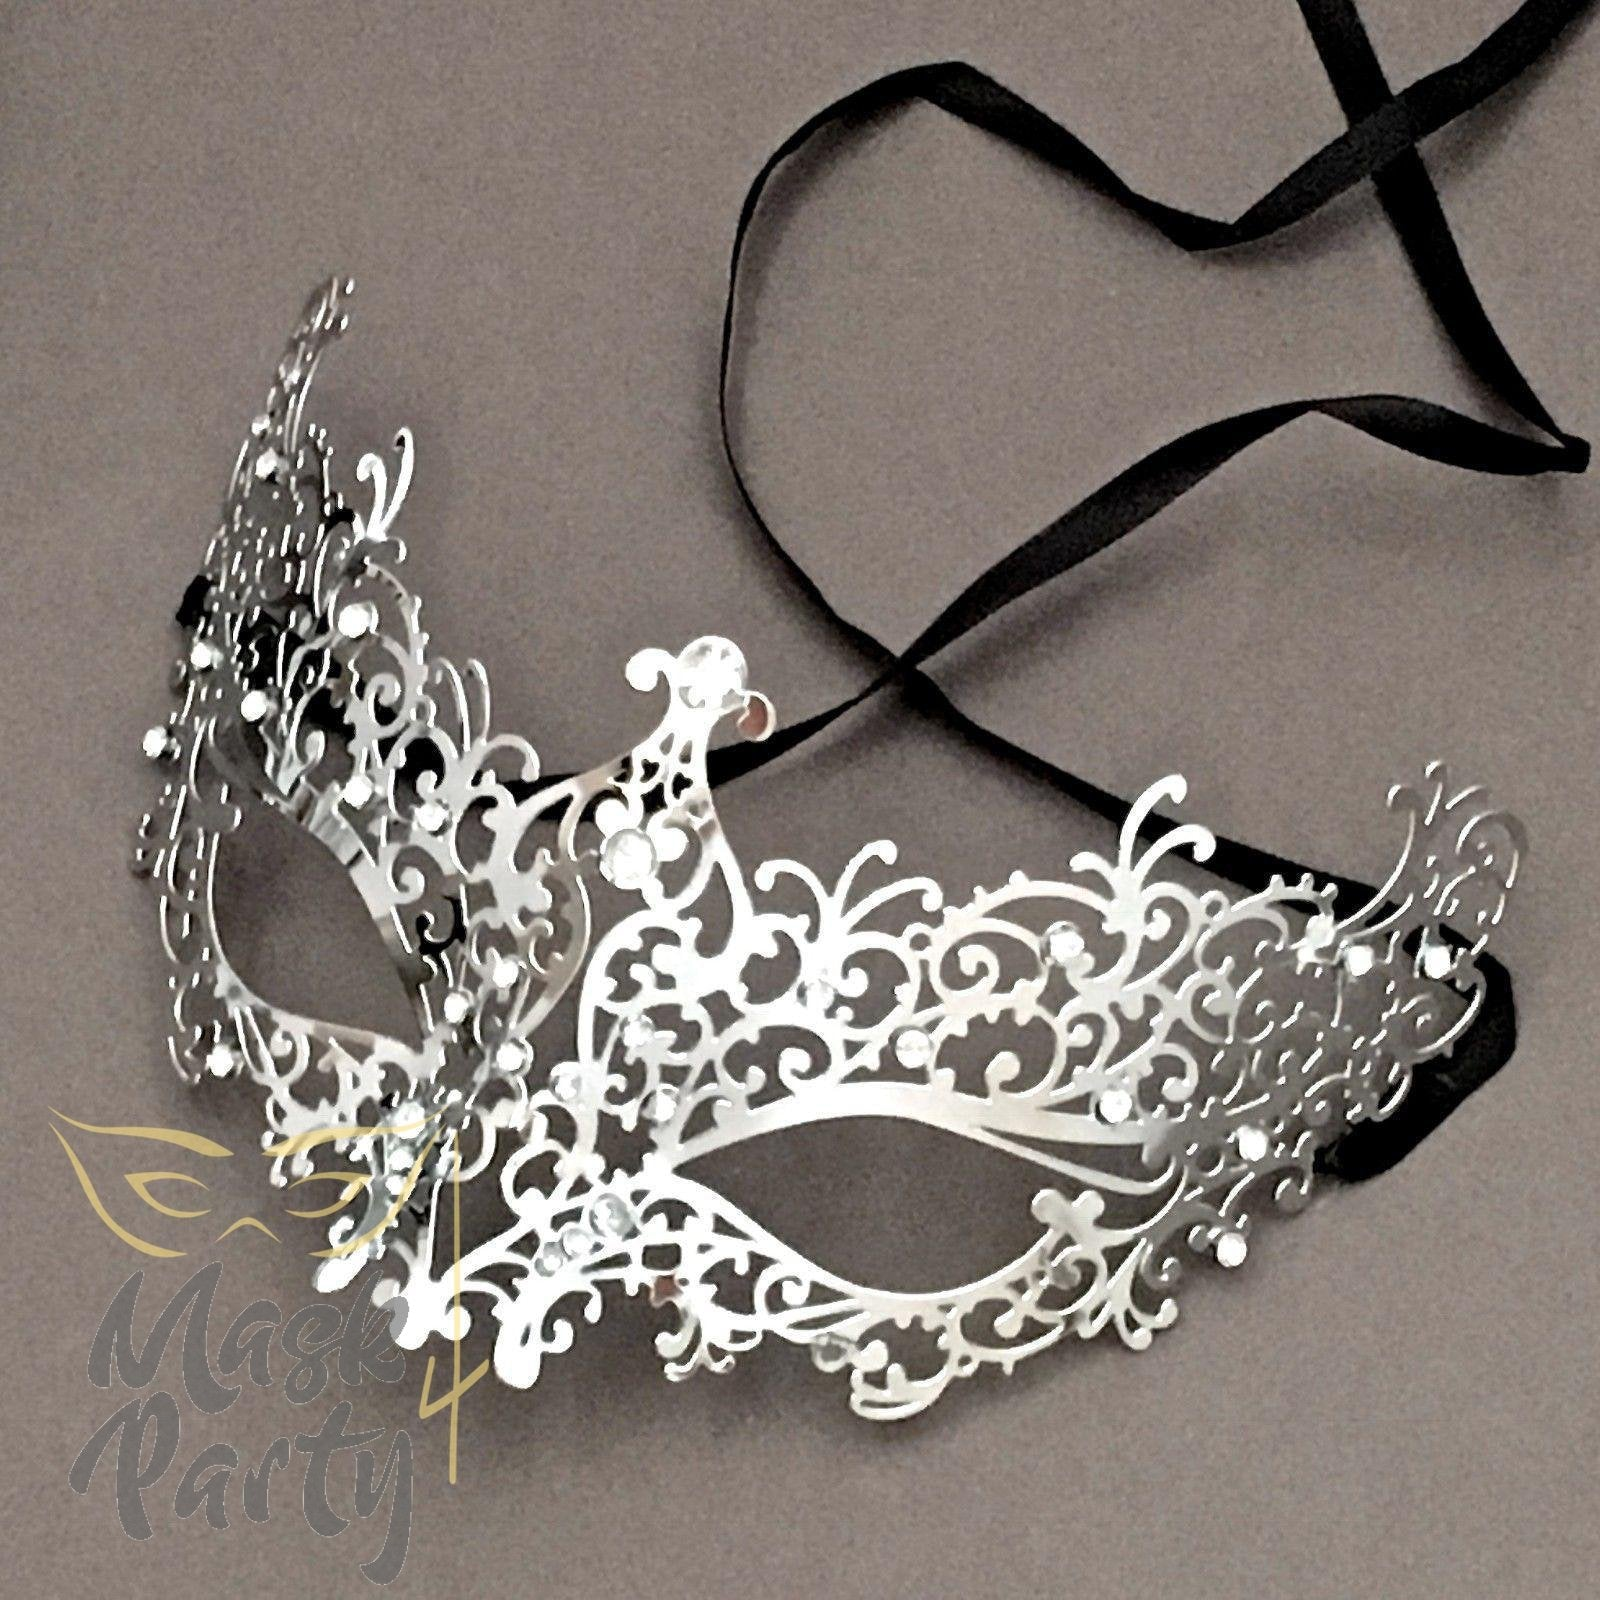 Masquerade Mask - Filigree Metal Eye - Silver w/ Clear Rhinestones - Mask4Party